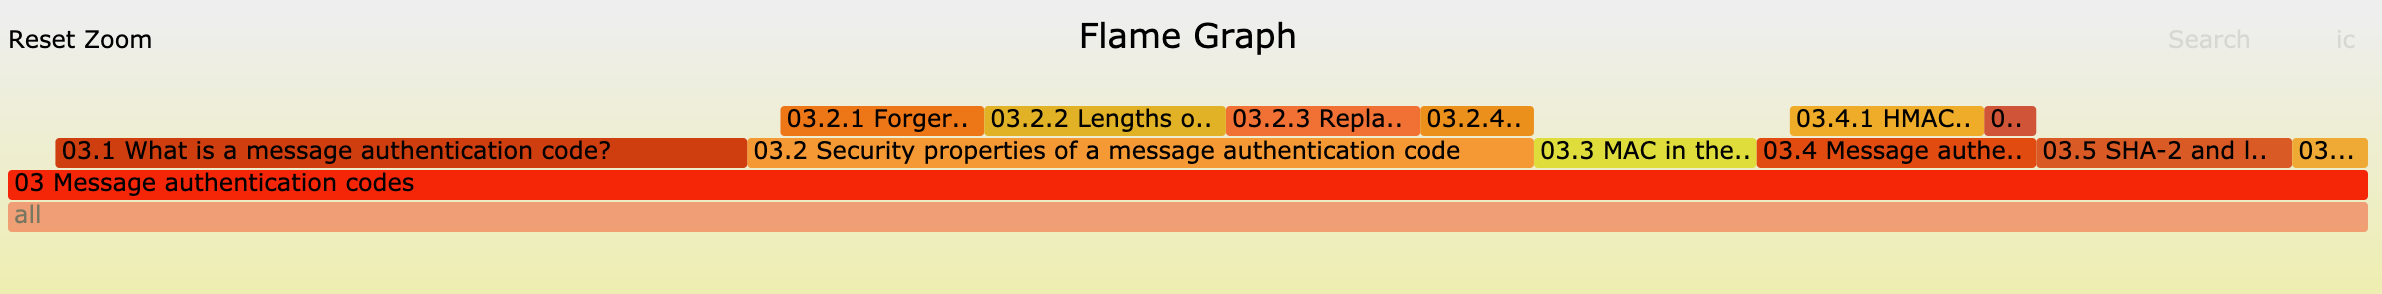 flamegraph not nested enough